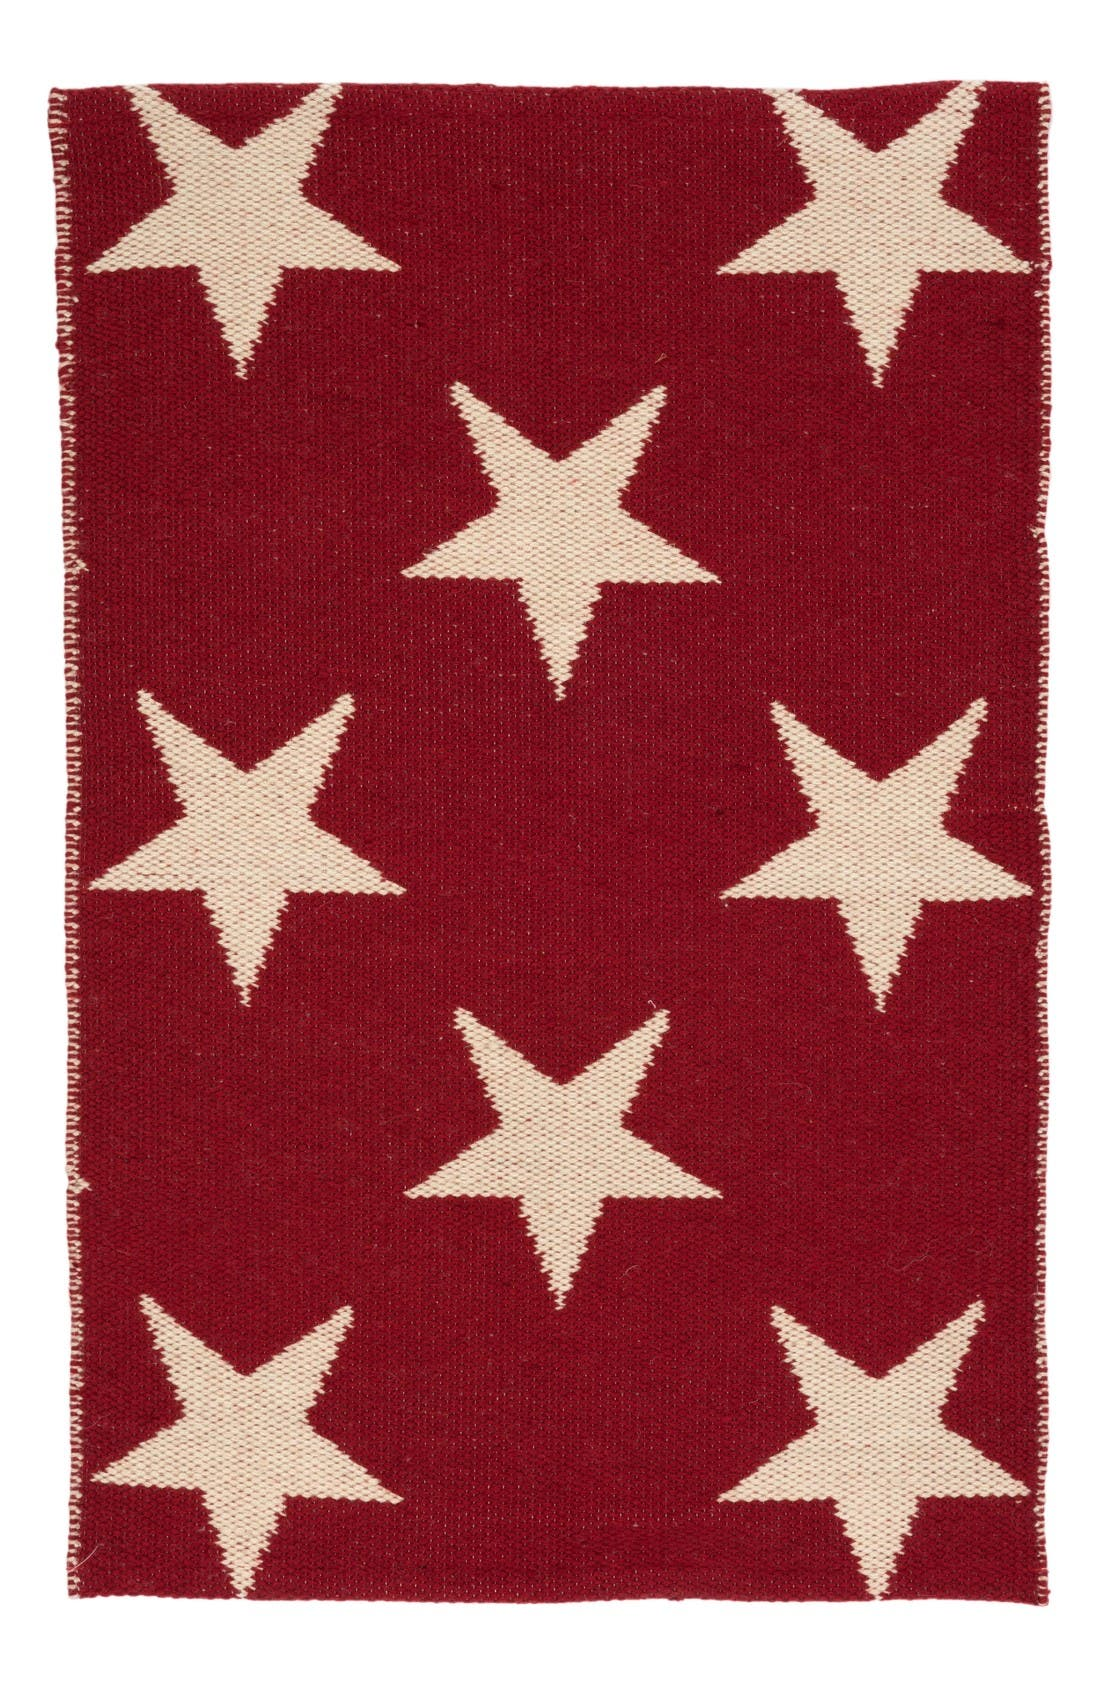 Star Indoor/Outdoor Rug,                         Main,                         color, Red